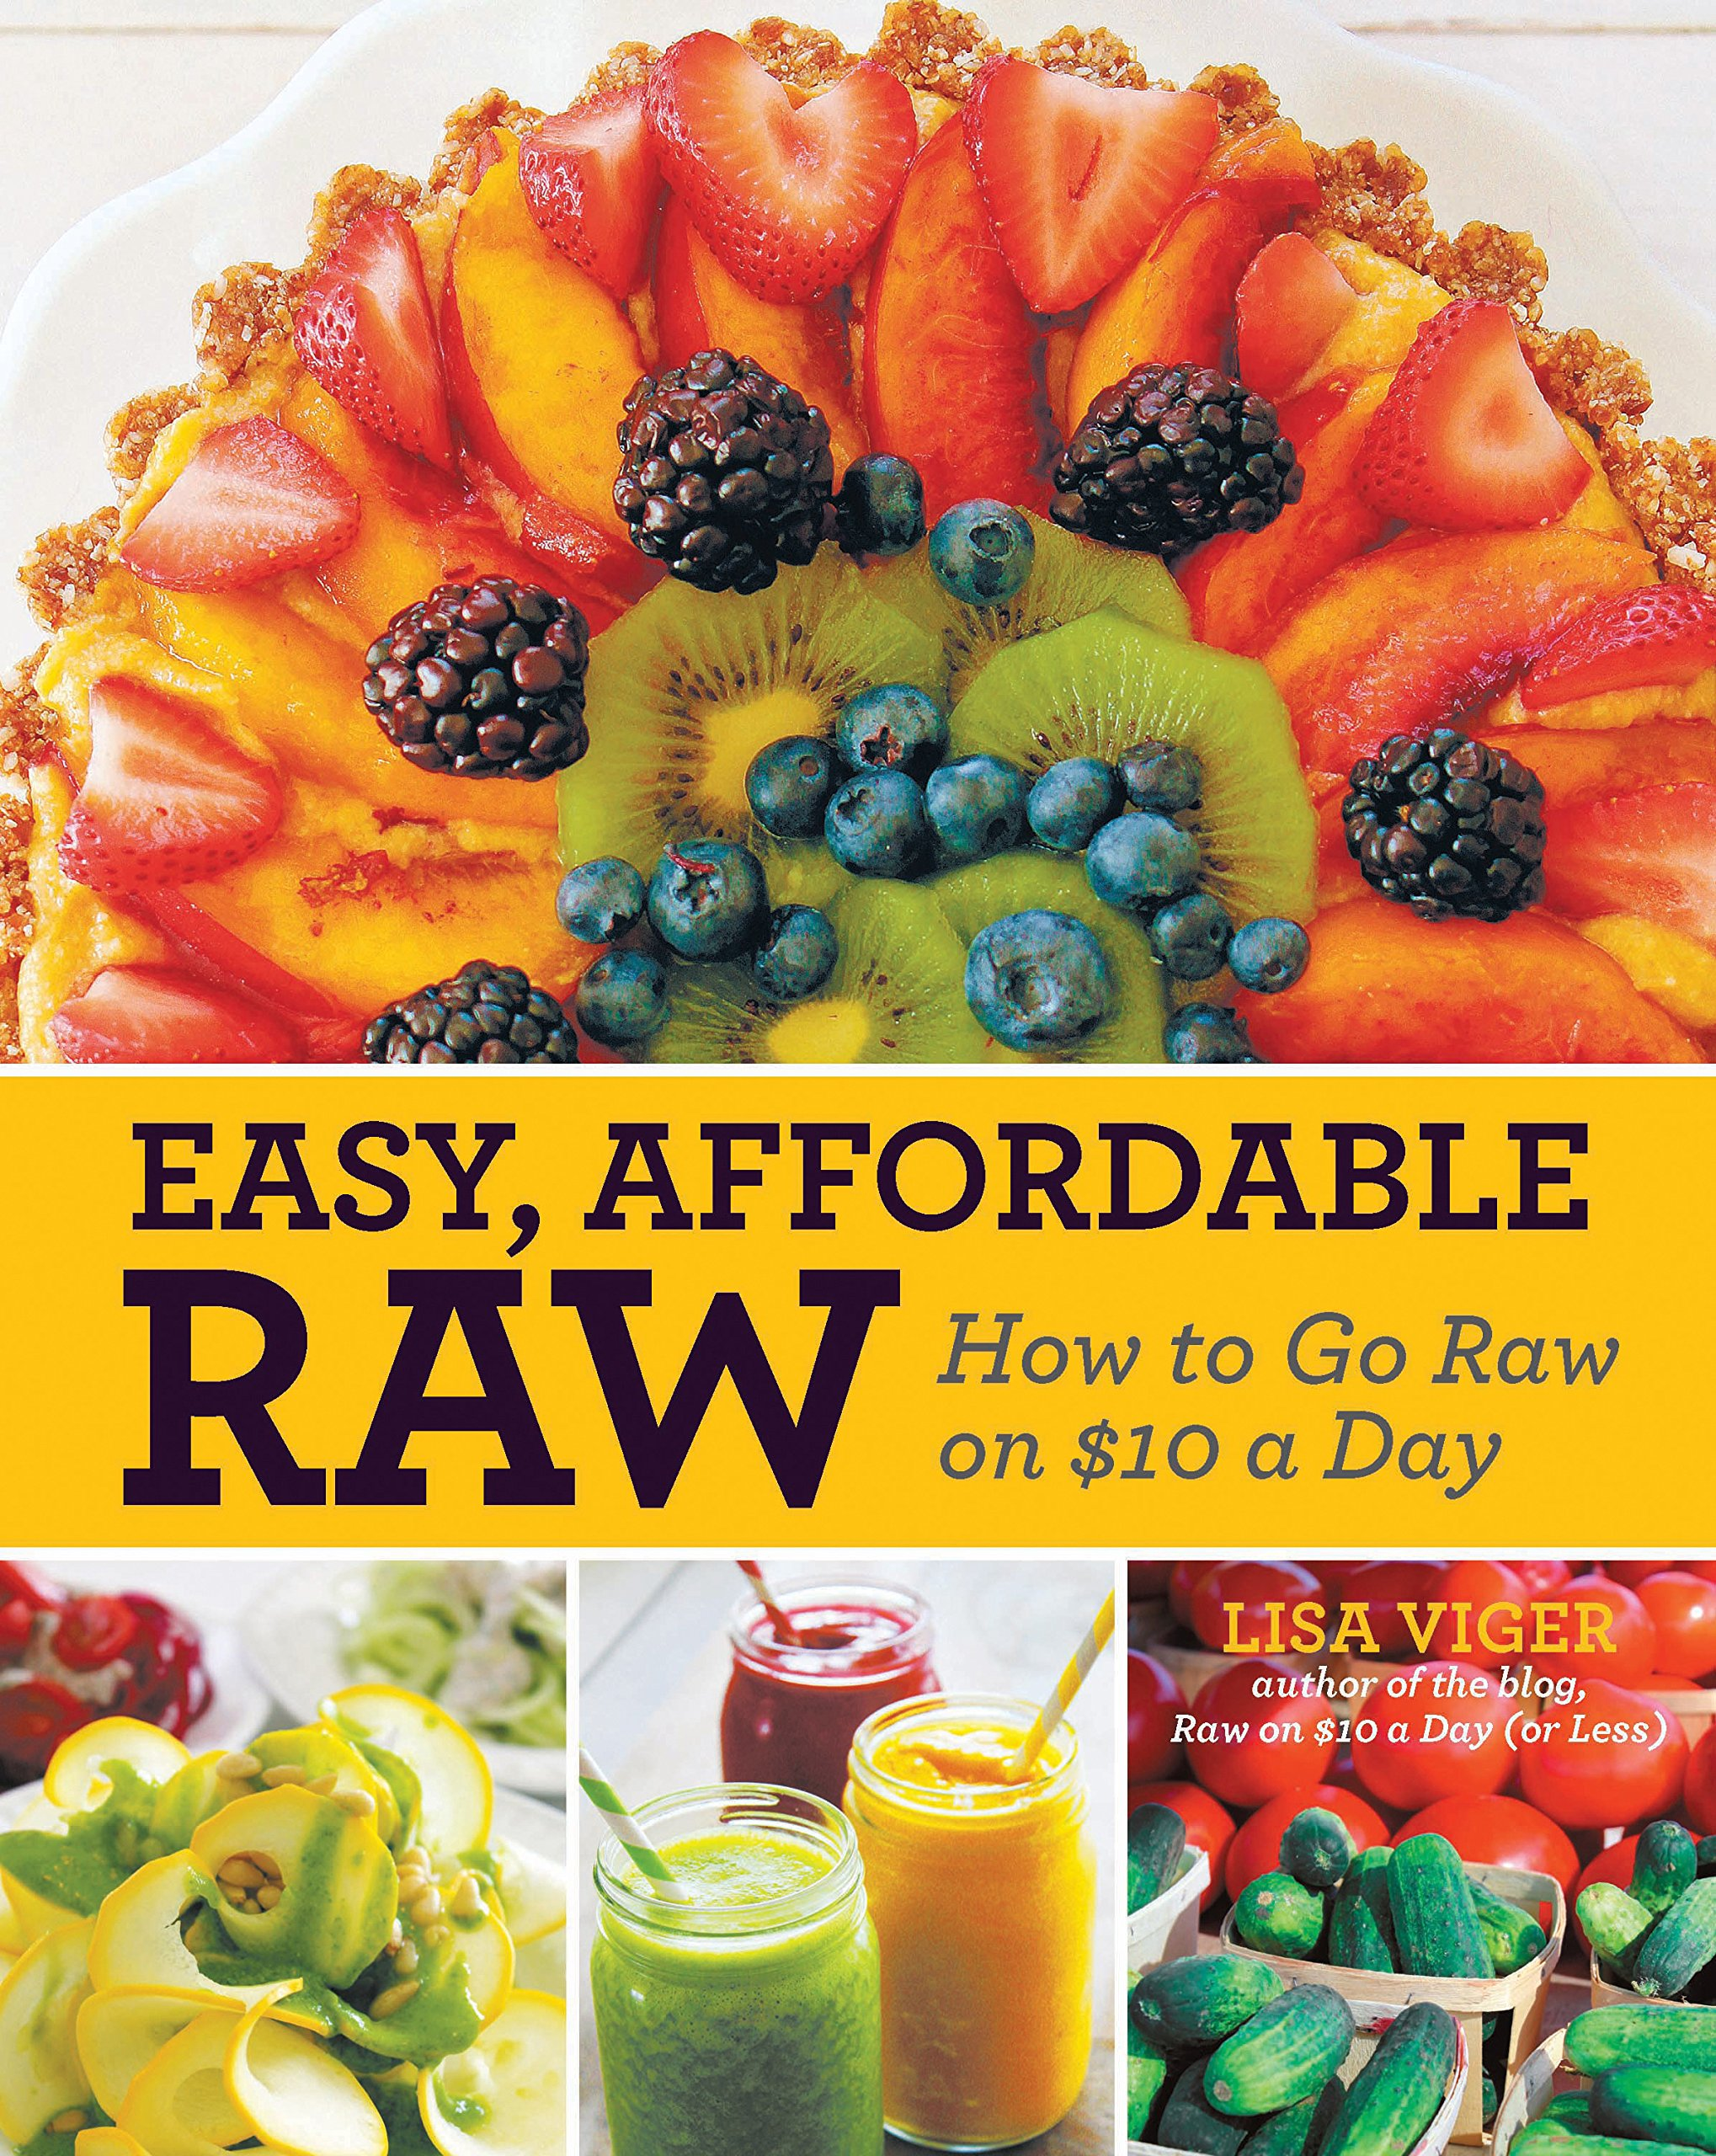 Image OfEasy, Affordable Raw: How To Go Raw On $10 A Day